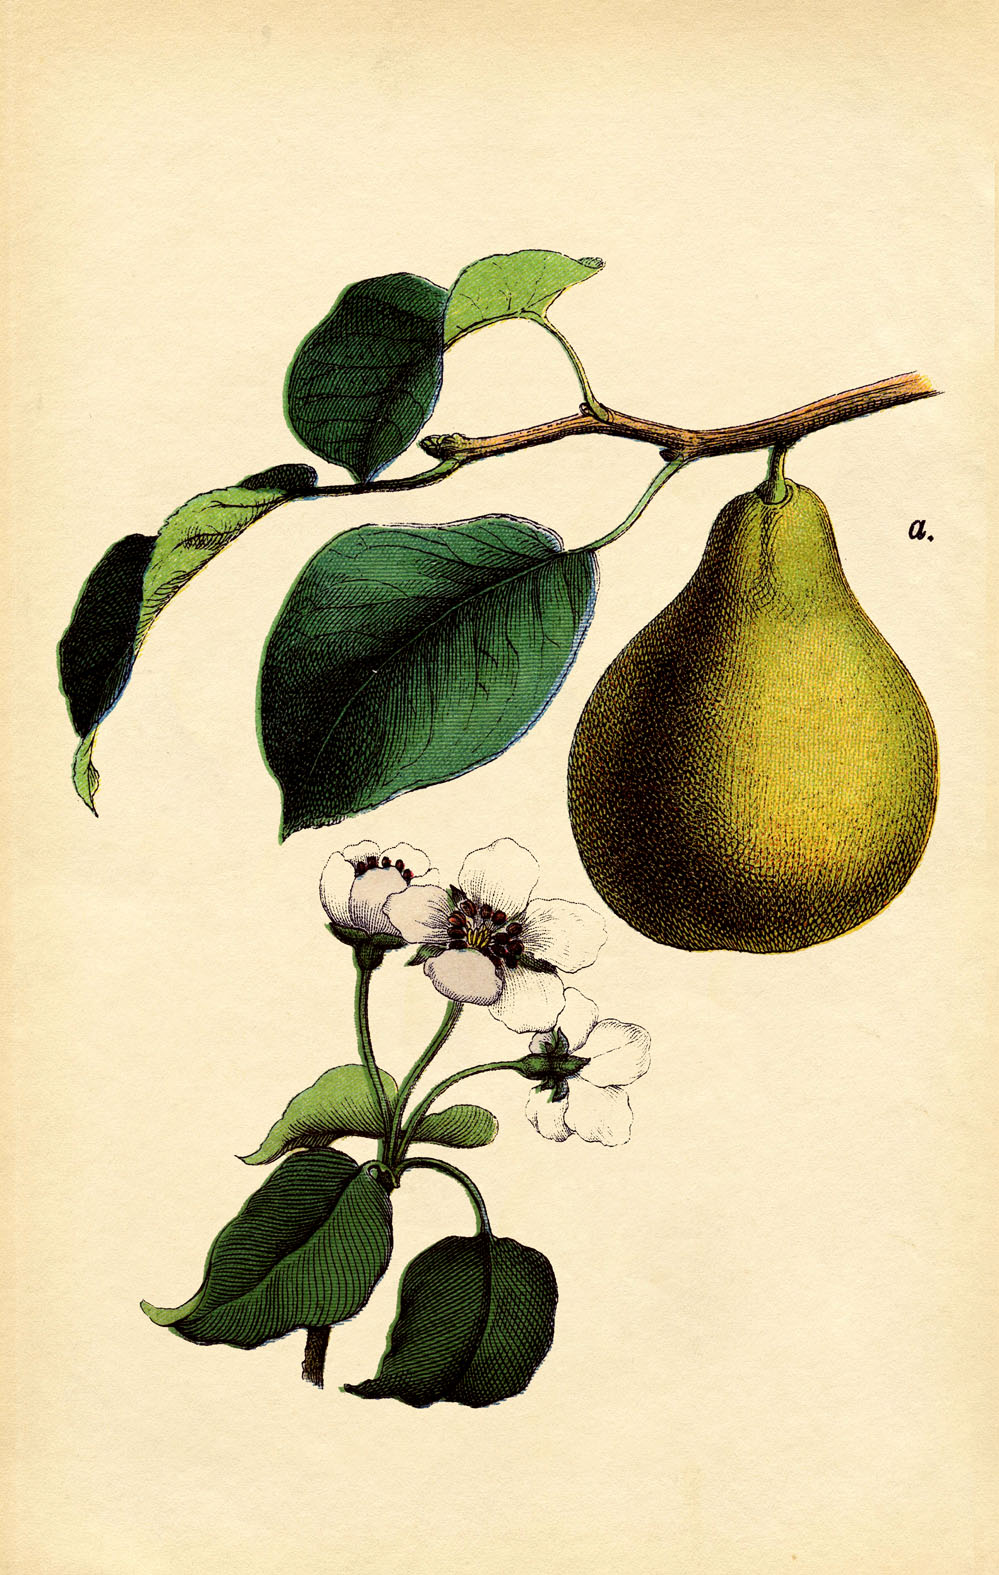 Instant Art Printable - Botanical Pear - The Graphics Fairy